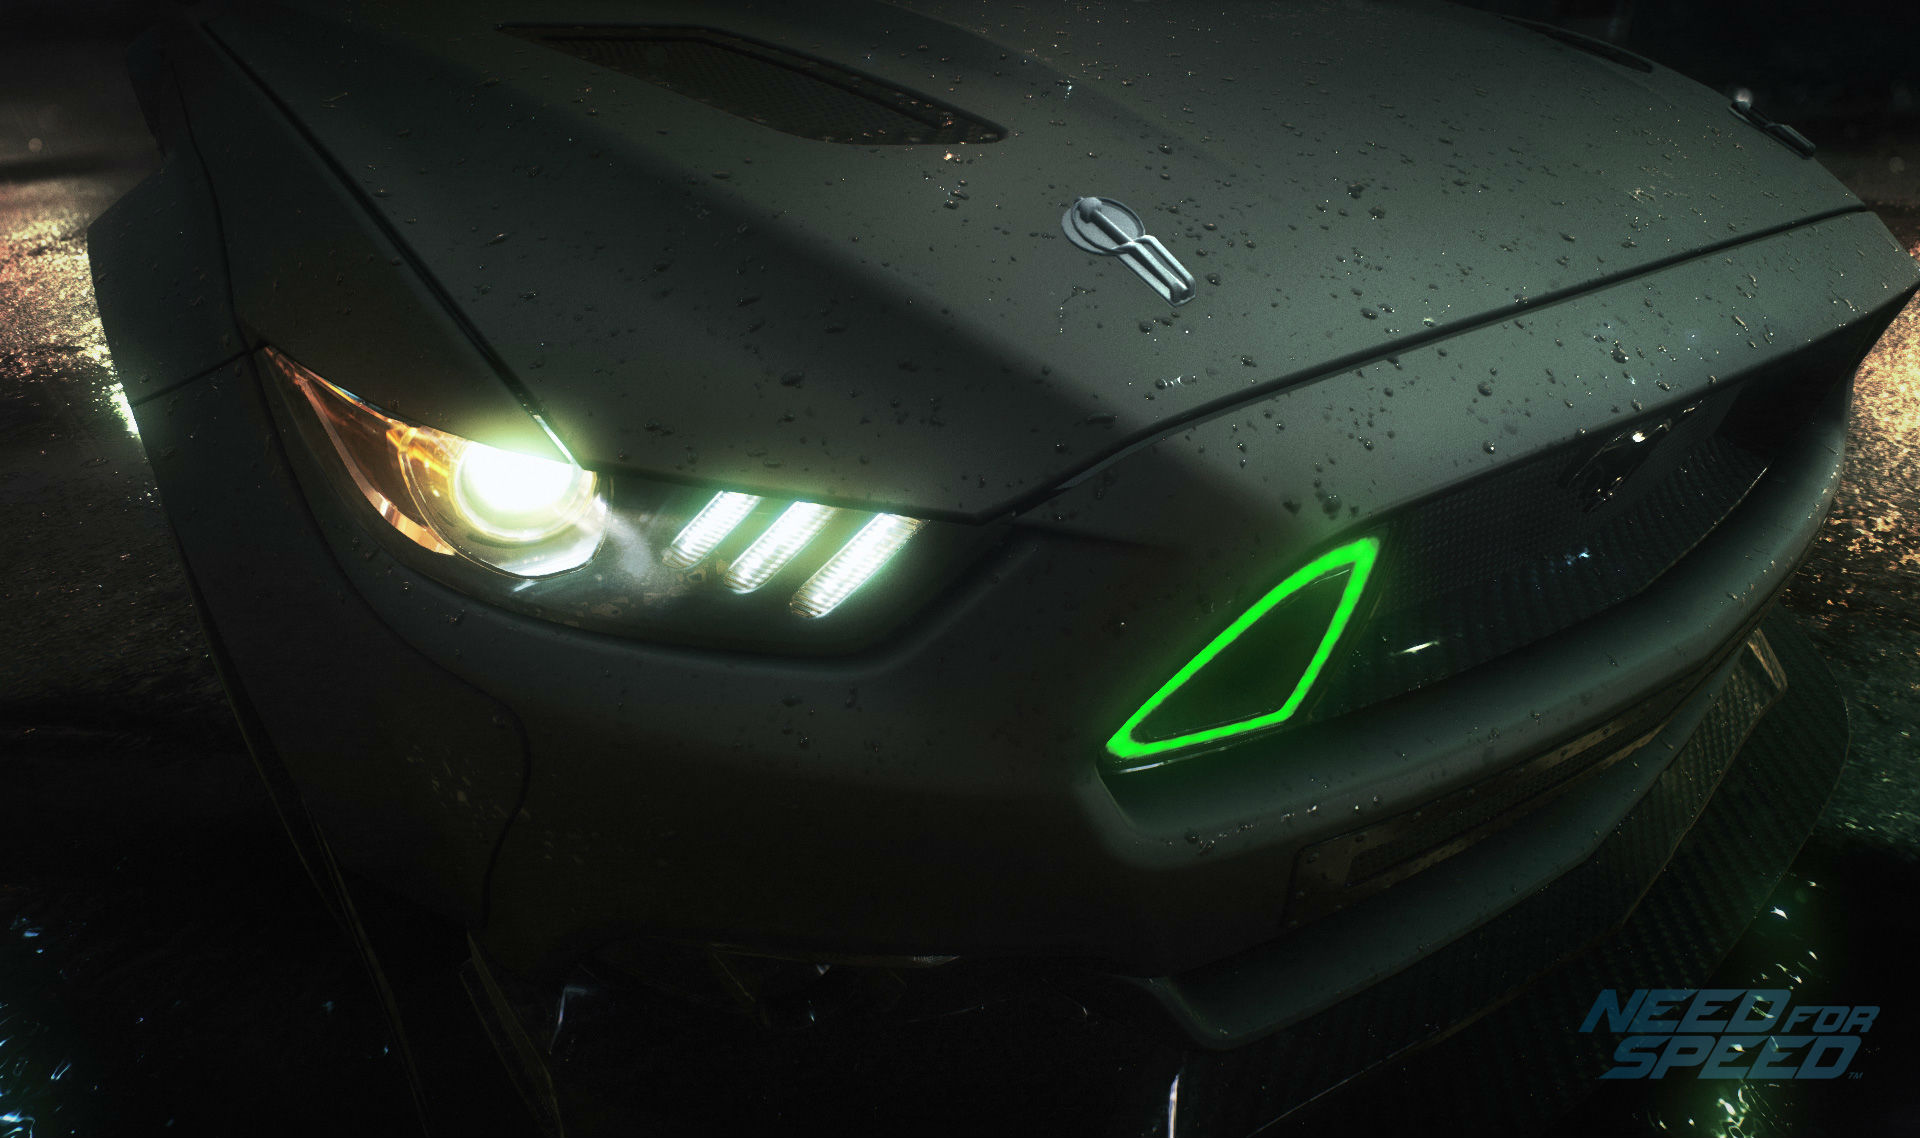 Need for Speed 2015 - Ford Mustang - teaser